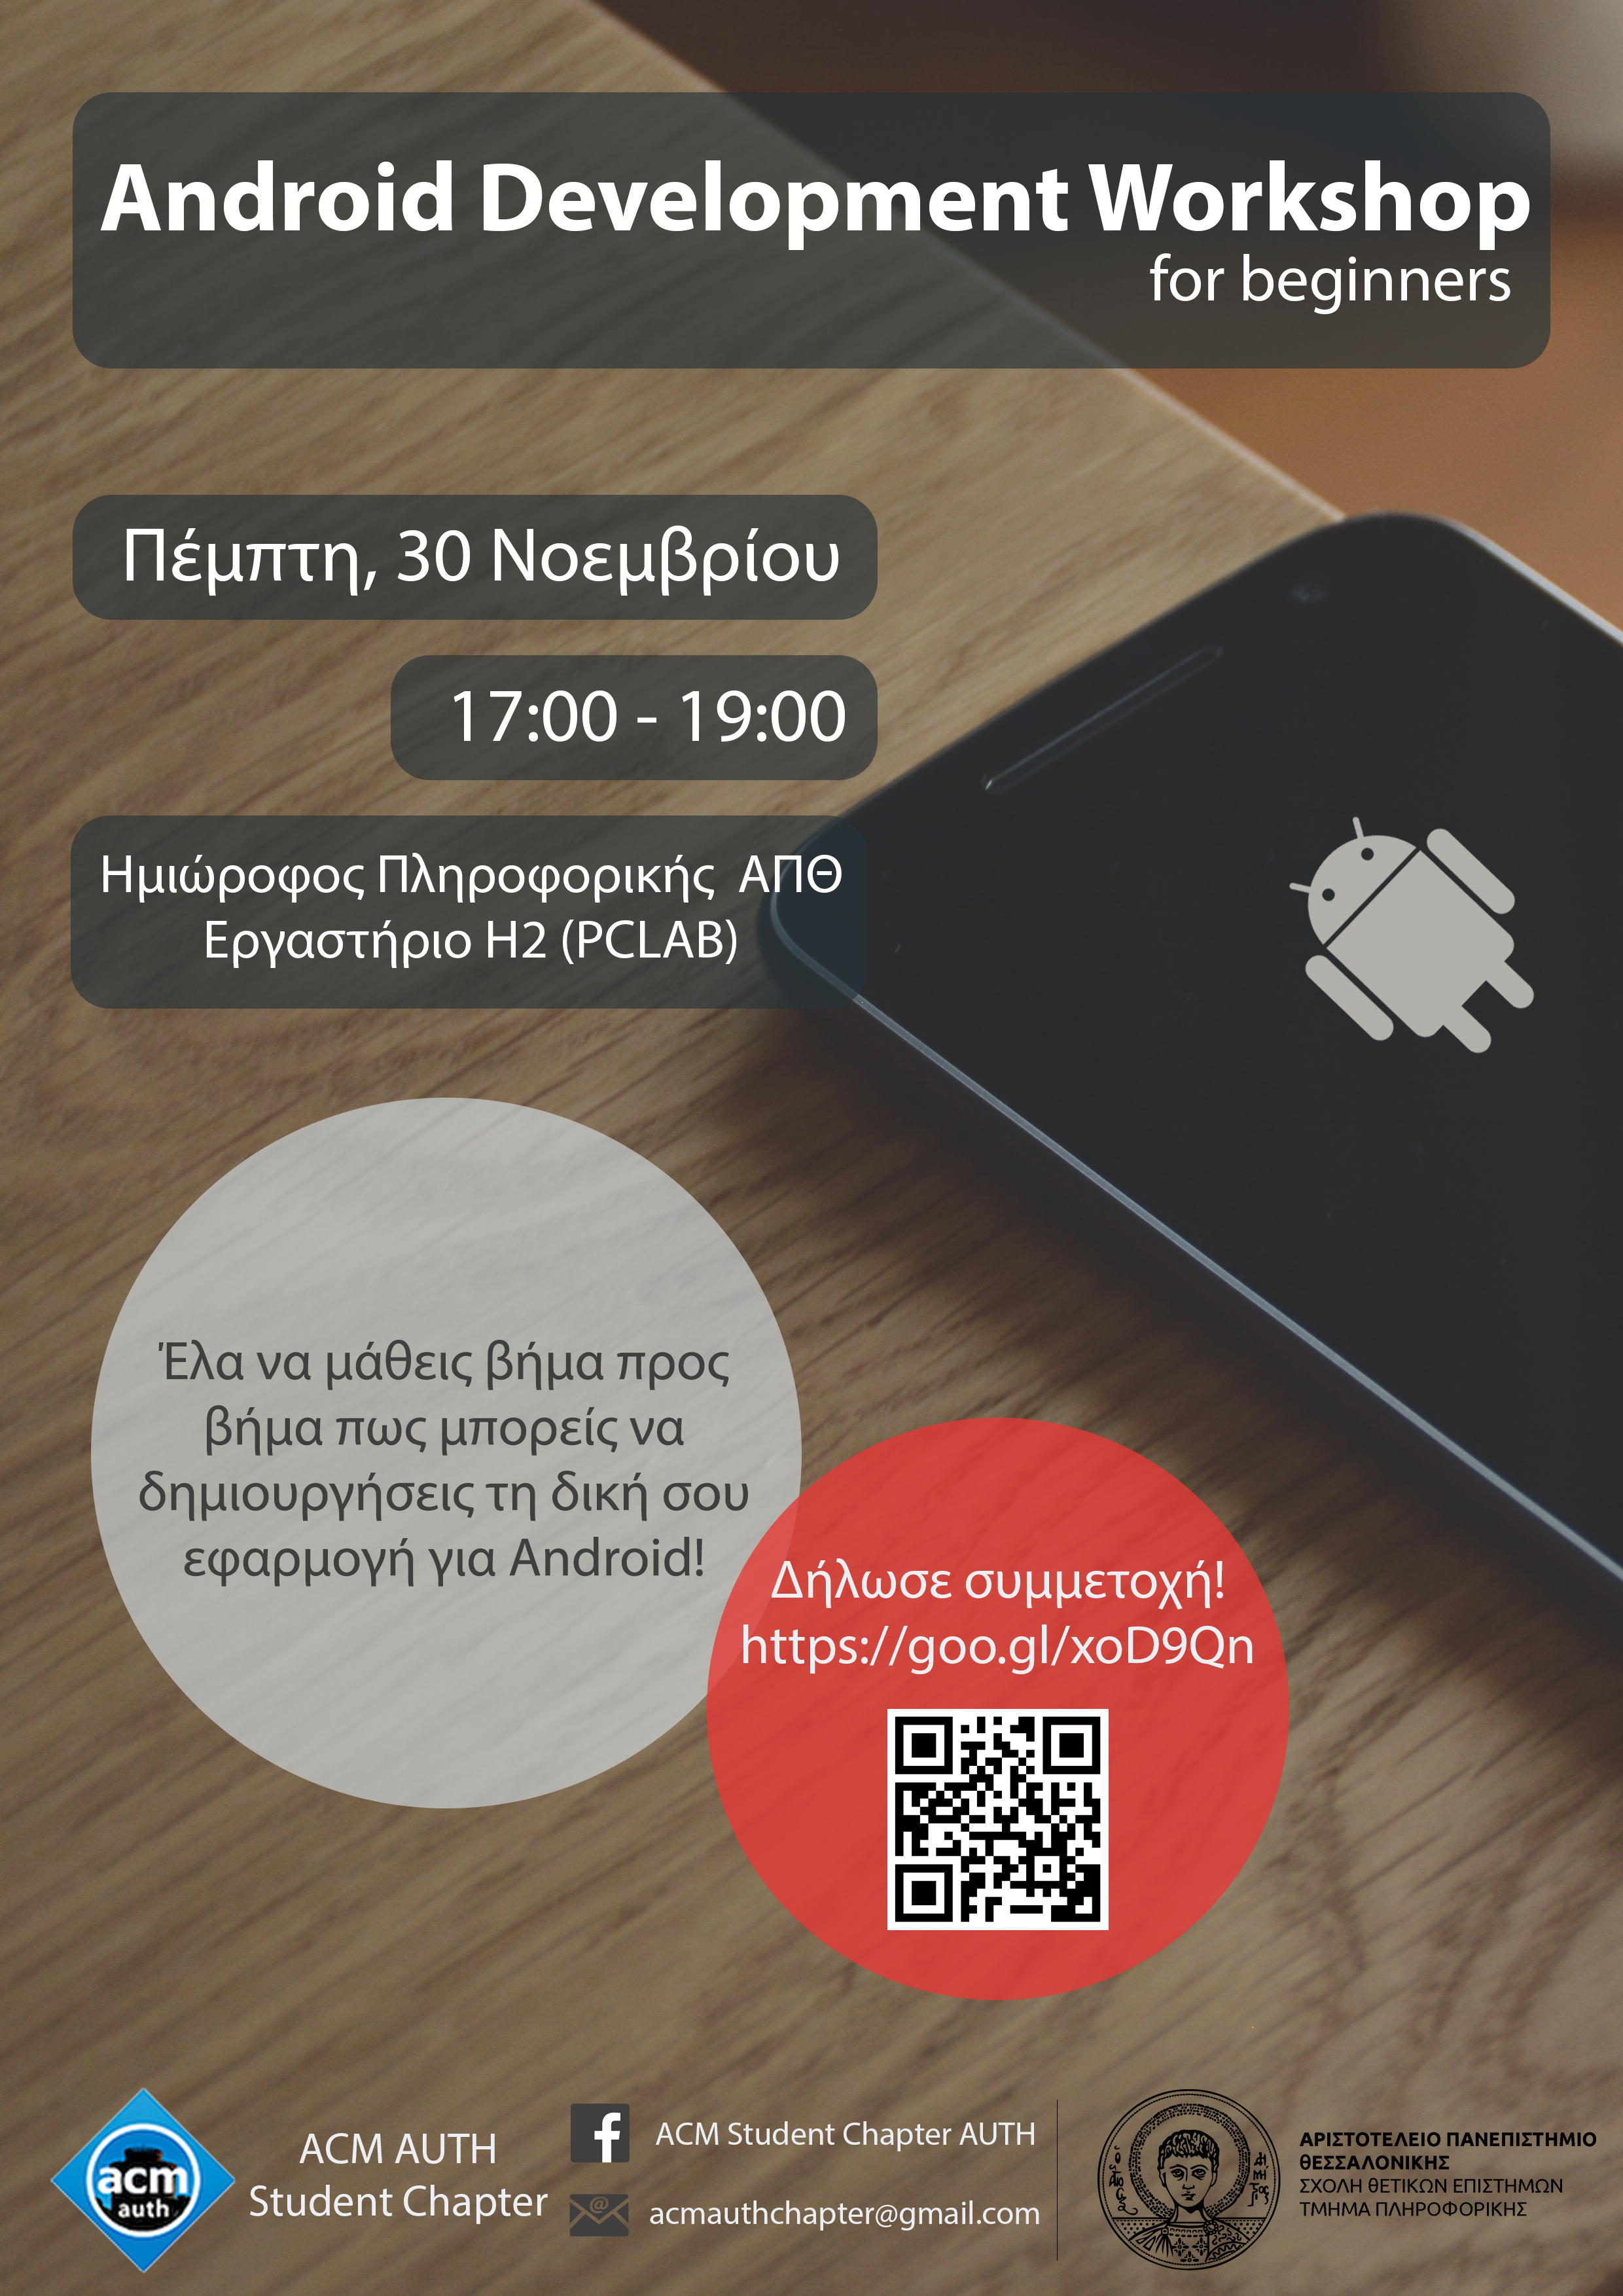 acm_android_event2